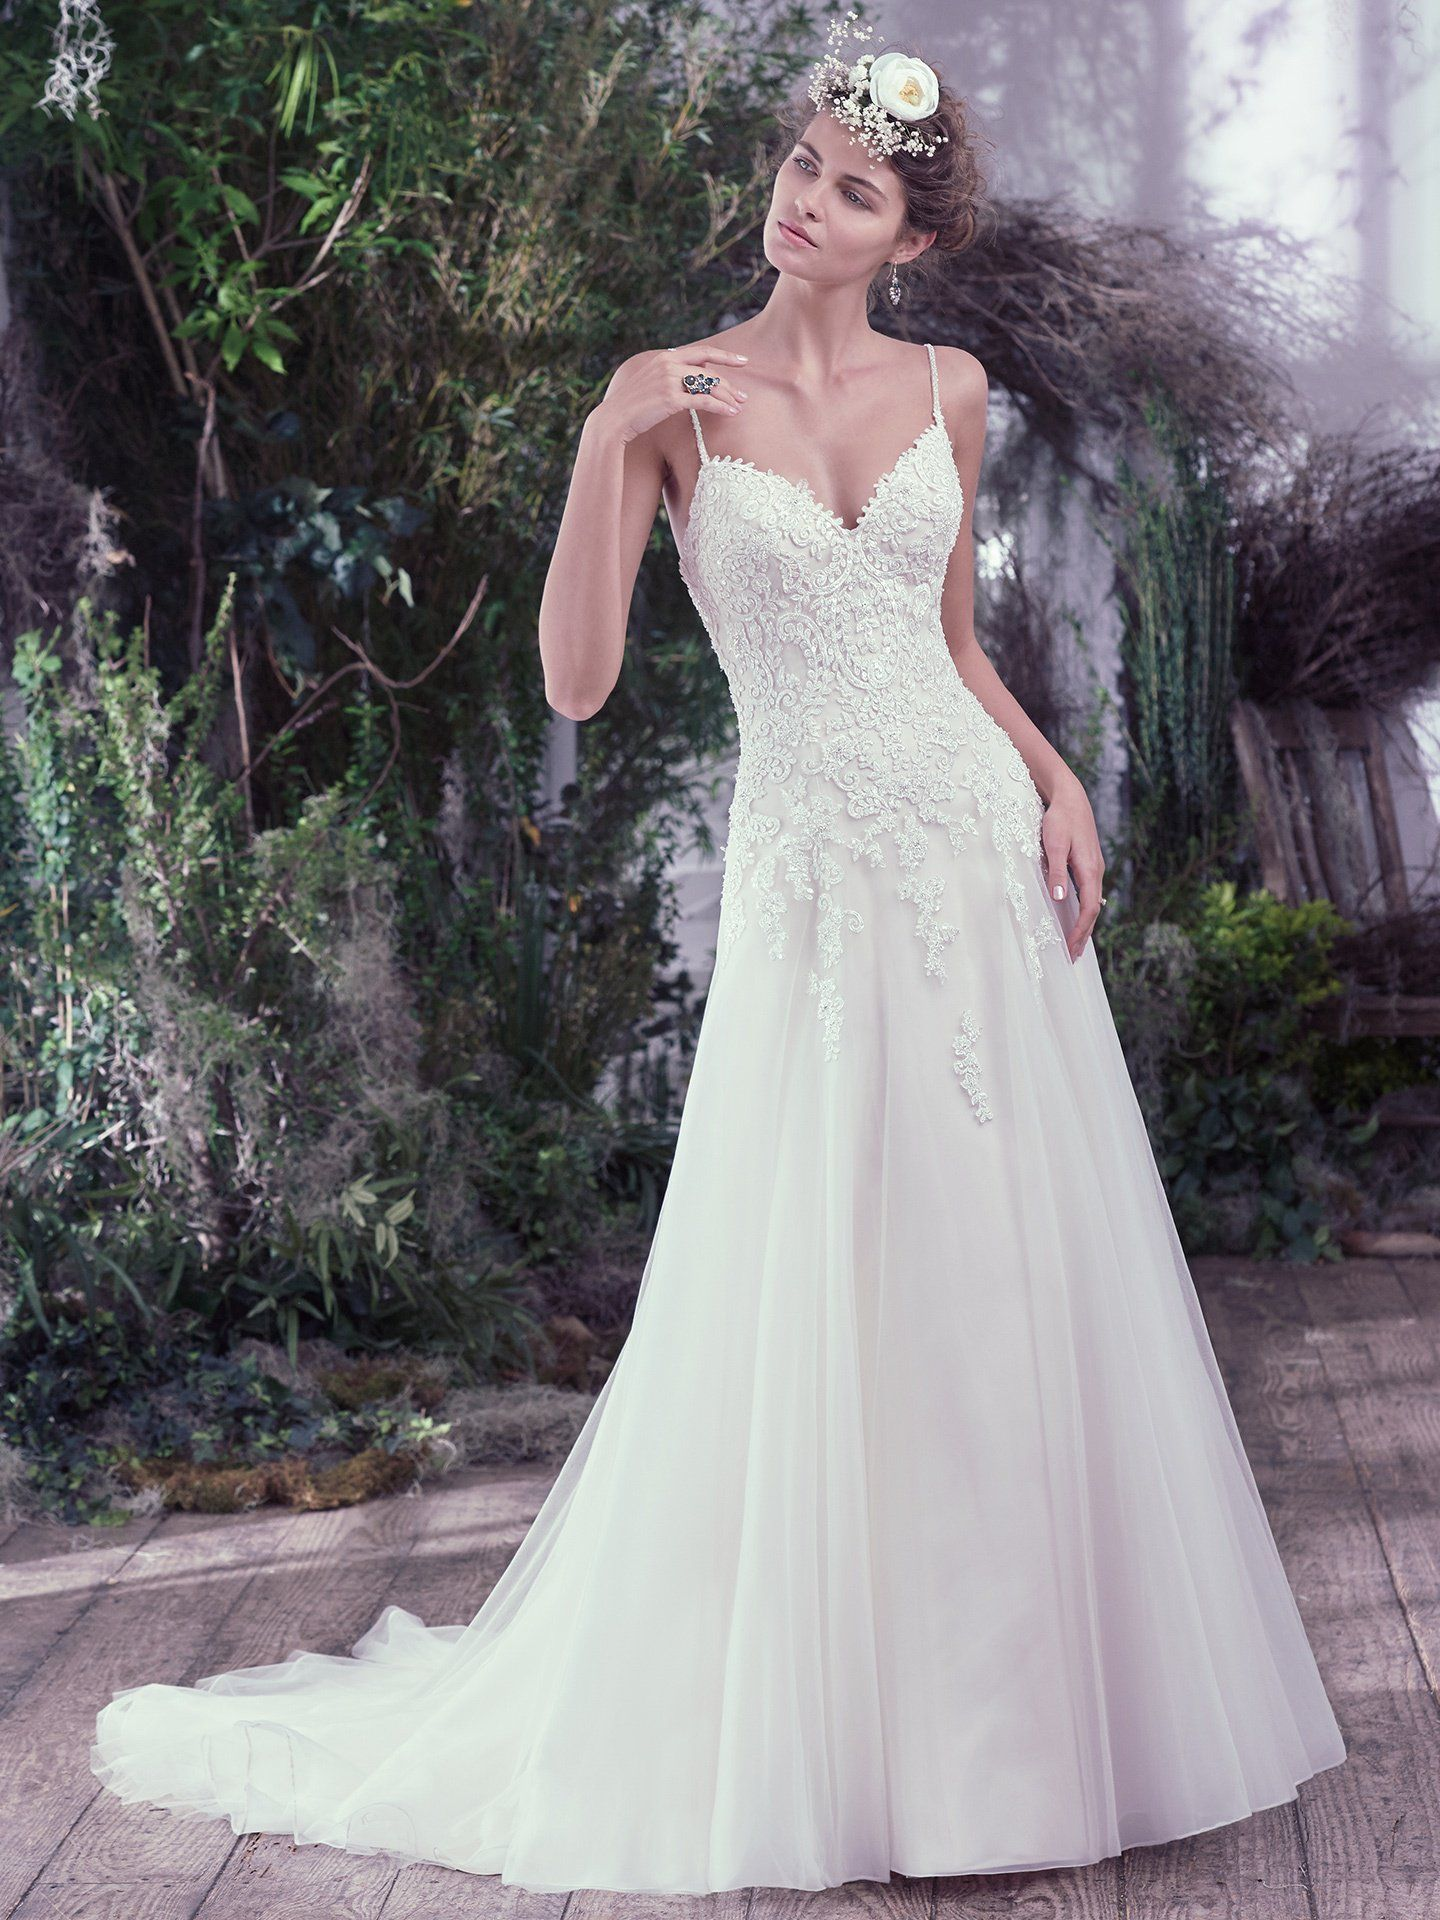 4c61e42cbf29 Delicate beaded spaghetti straps and a feminine V-neckline add ethereal  touches to this A-line wedding dress. Swarovski crystals and beading adorn  a fitted ...